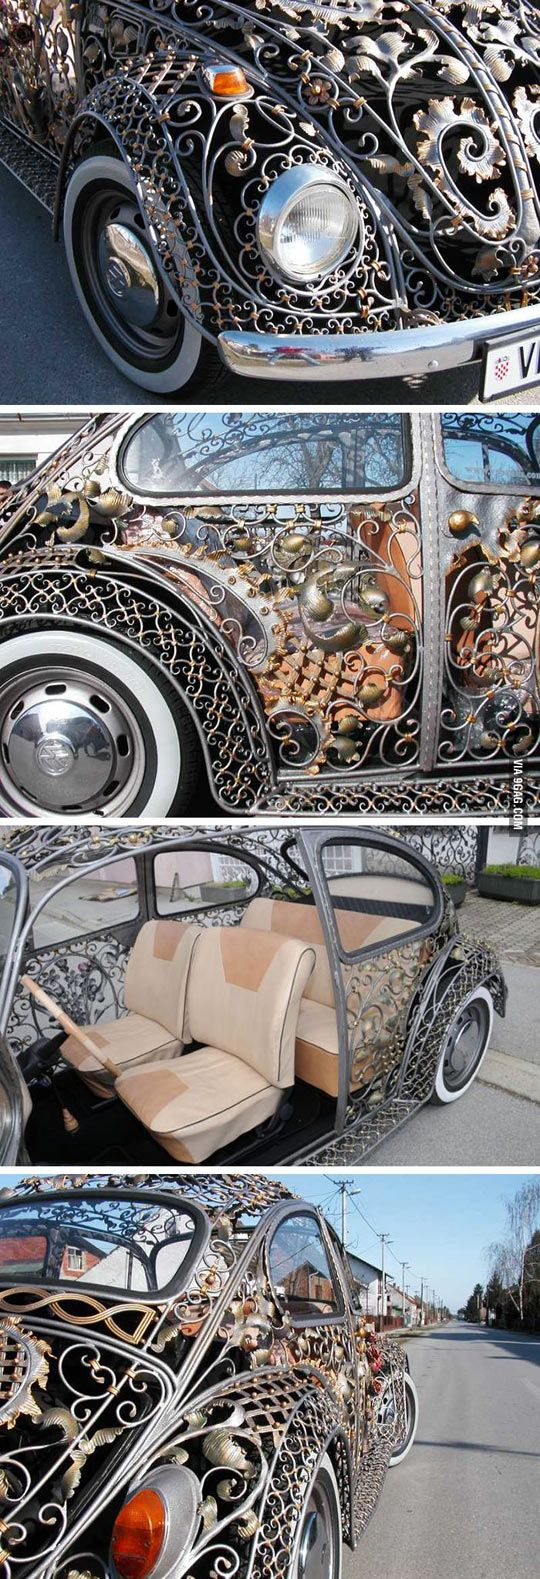 cool-bug-car-metalwork-body.jpg (540×1579)